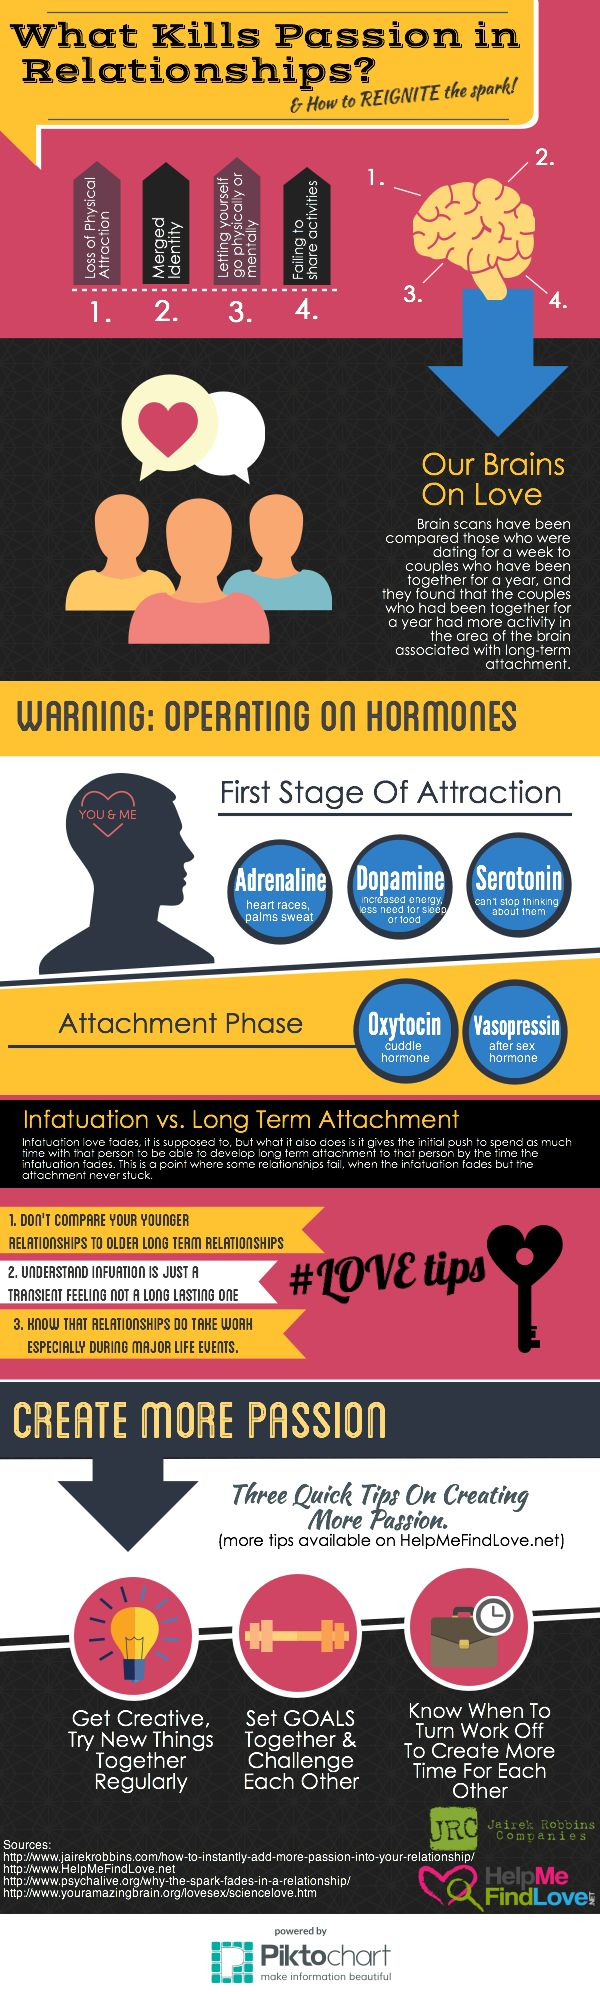 5 Pieces of Bad Dating Advice Exposed